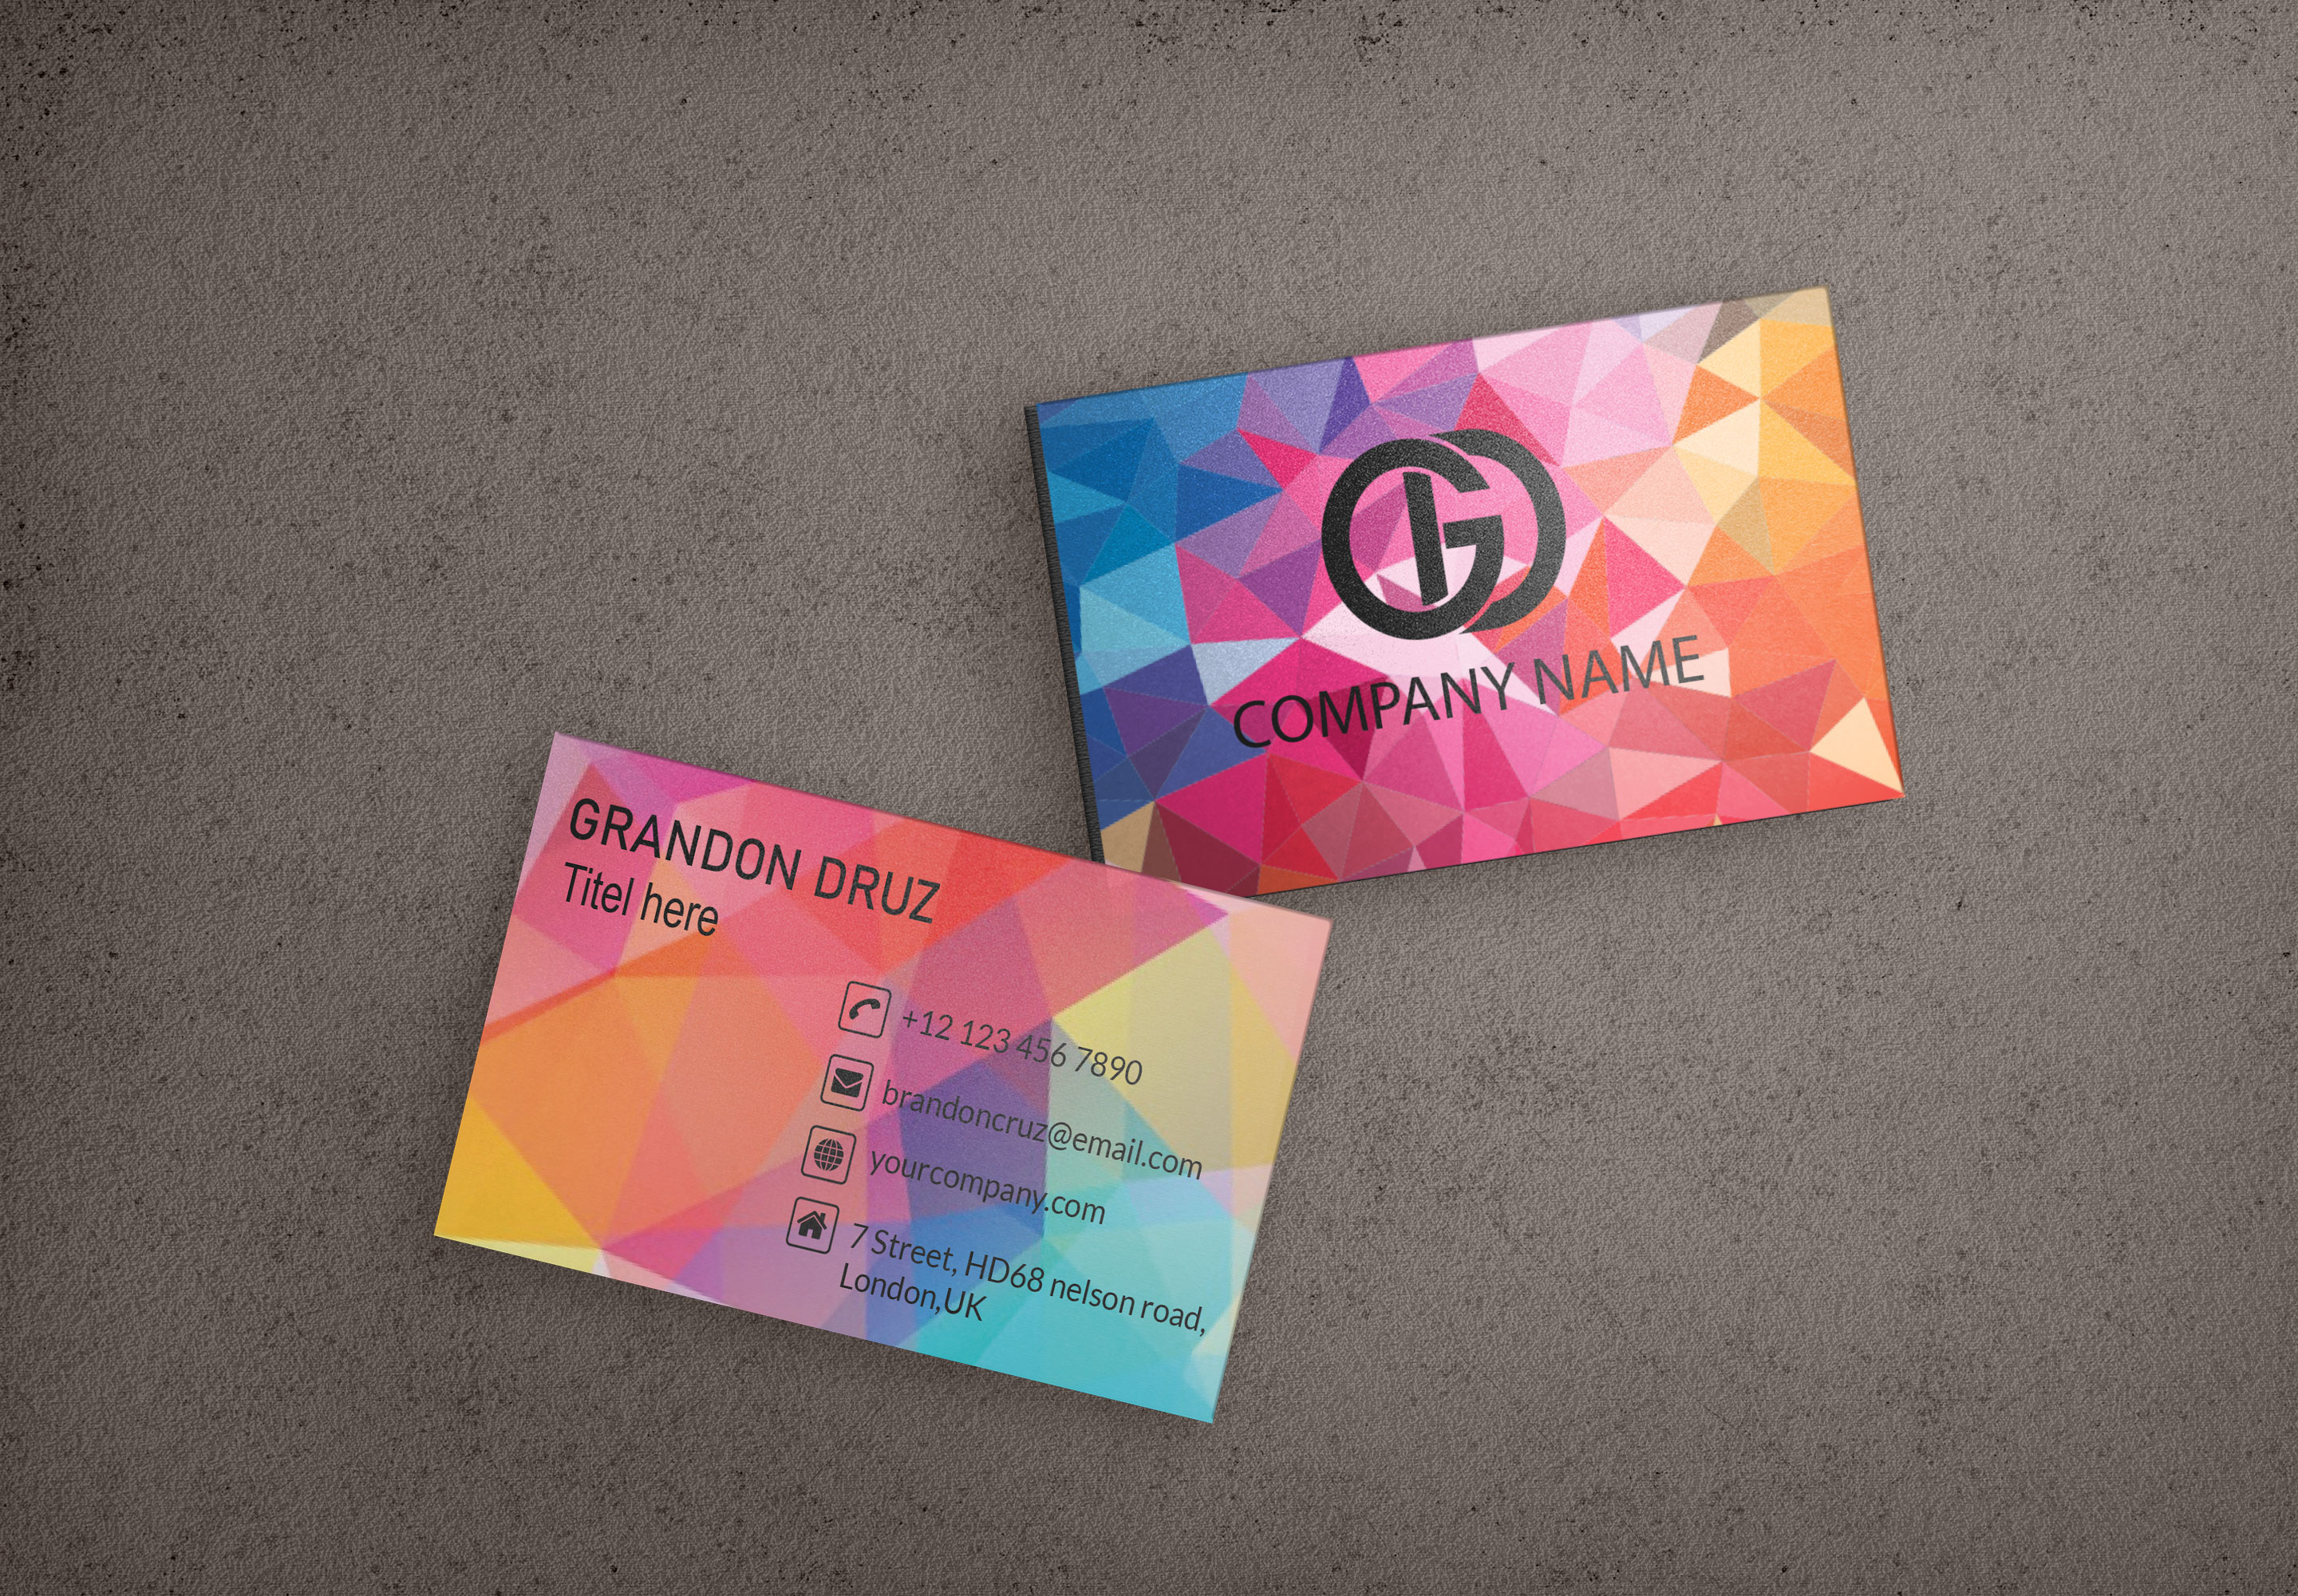 I will make you provide professional business card design services